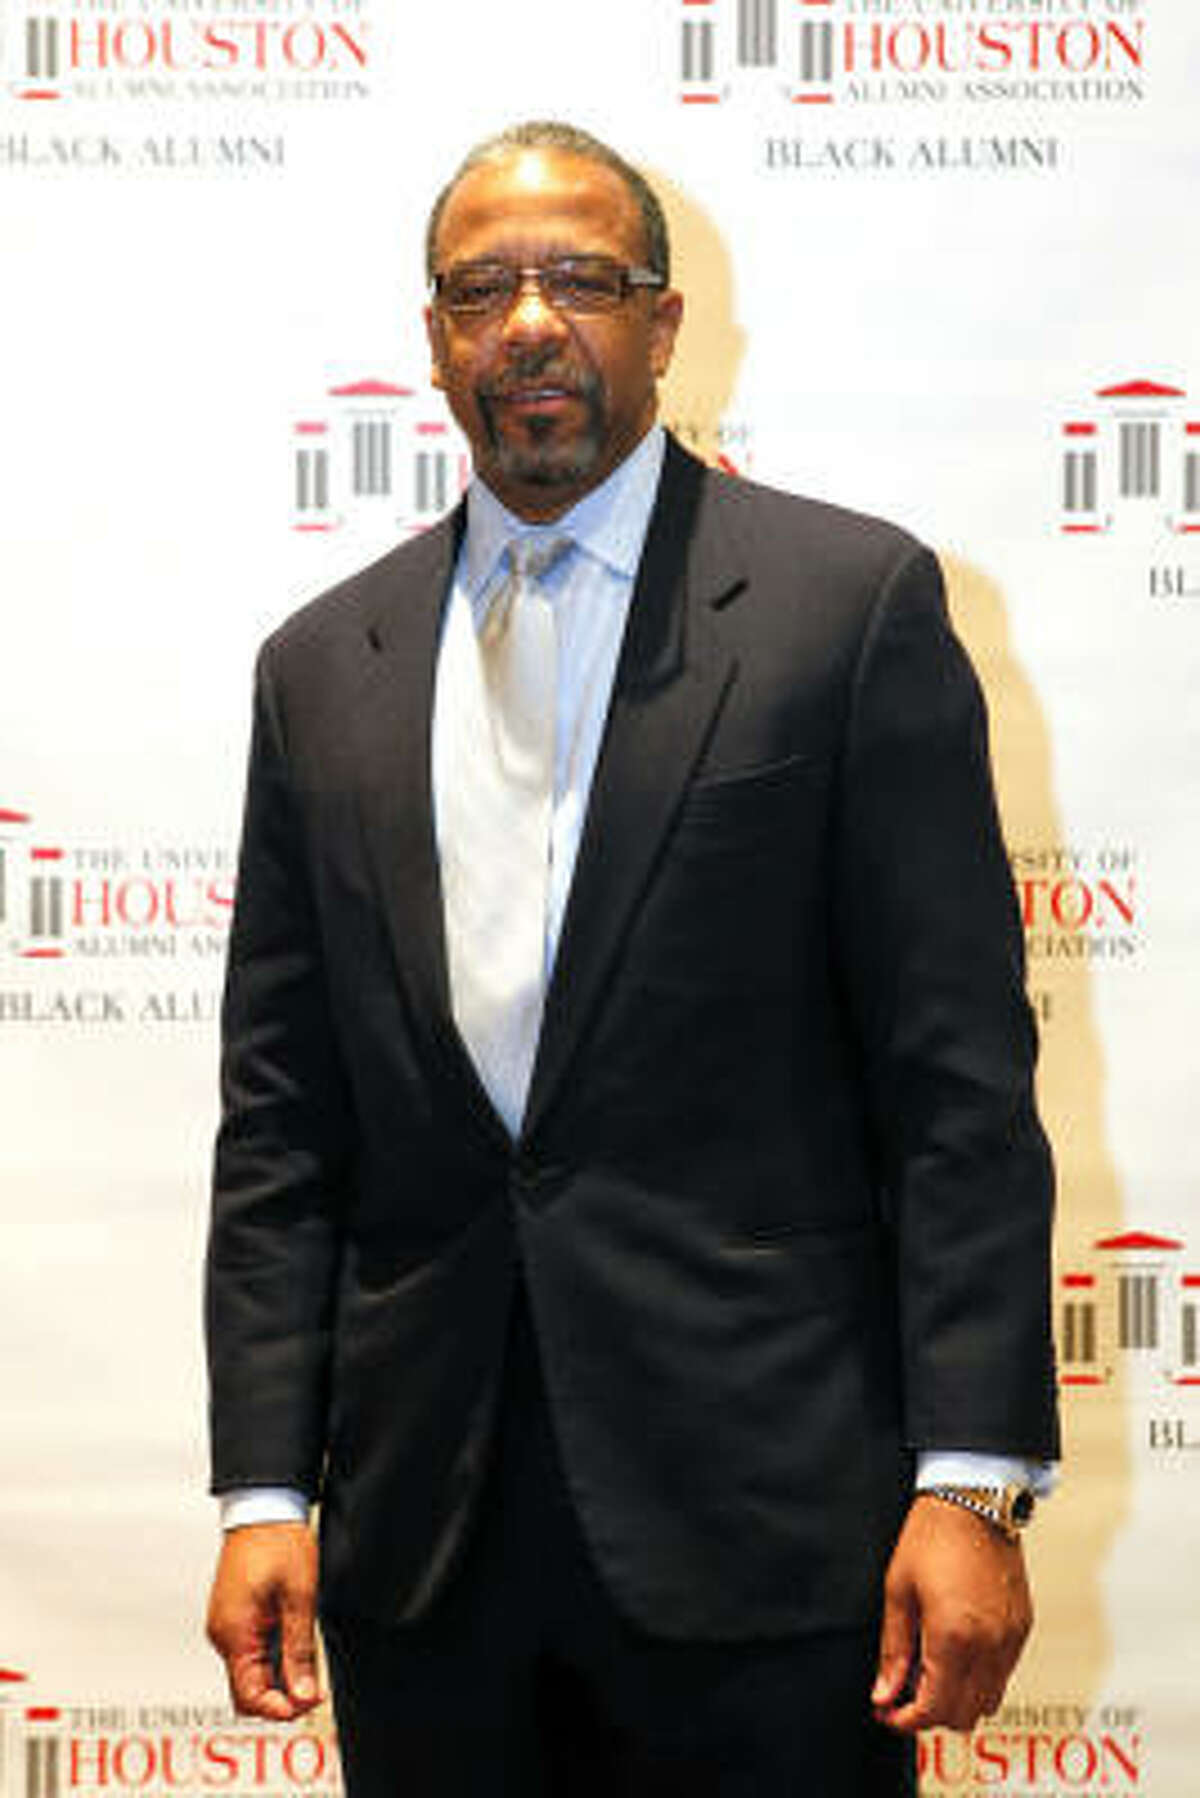 Distinguished Alumni Honoree Bernard A. Harris Jr.at the University of Houston Black Alumni Association's 21st Annual Scholarship and Awards Gala.